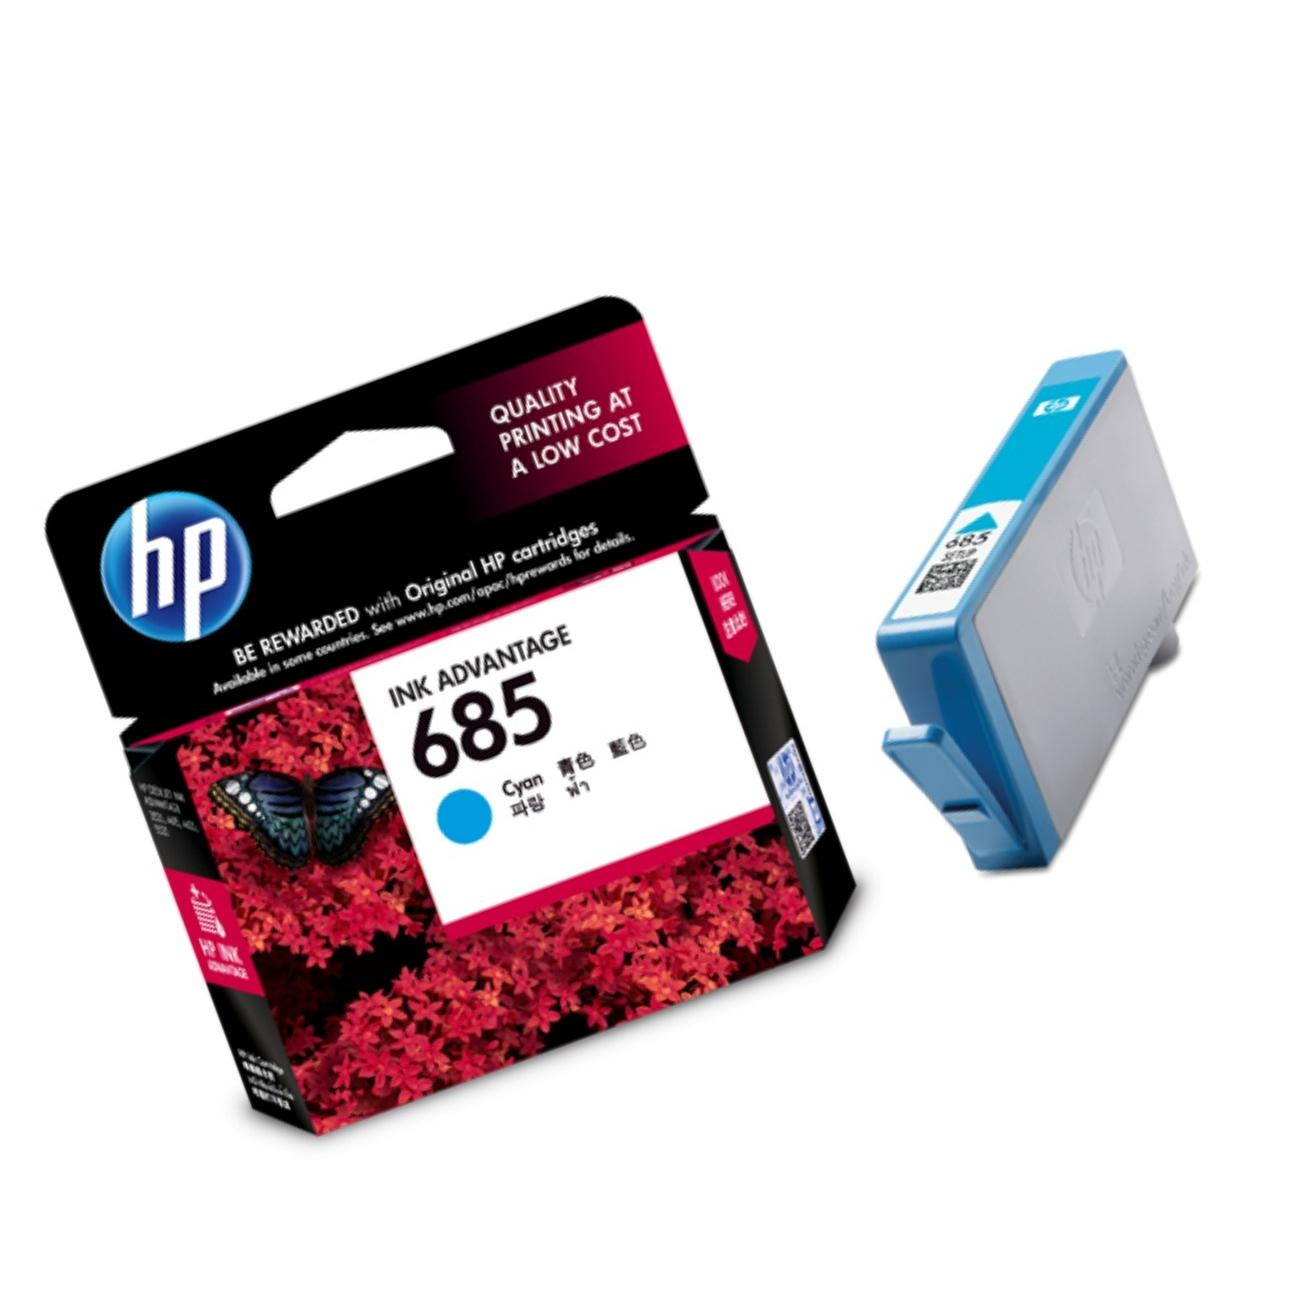 Paket Hemat Tinta Hp Deskjet 703 Black Tri Color Ink Cartridge 680 Colour Original Daftar Harga Terlengkap Indonesia Terkini Source